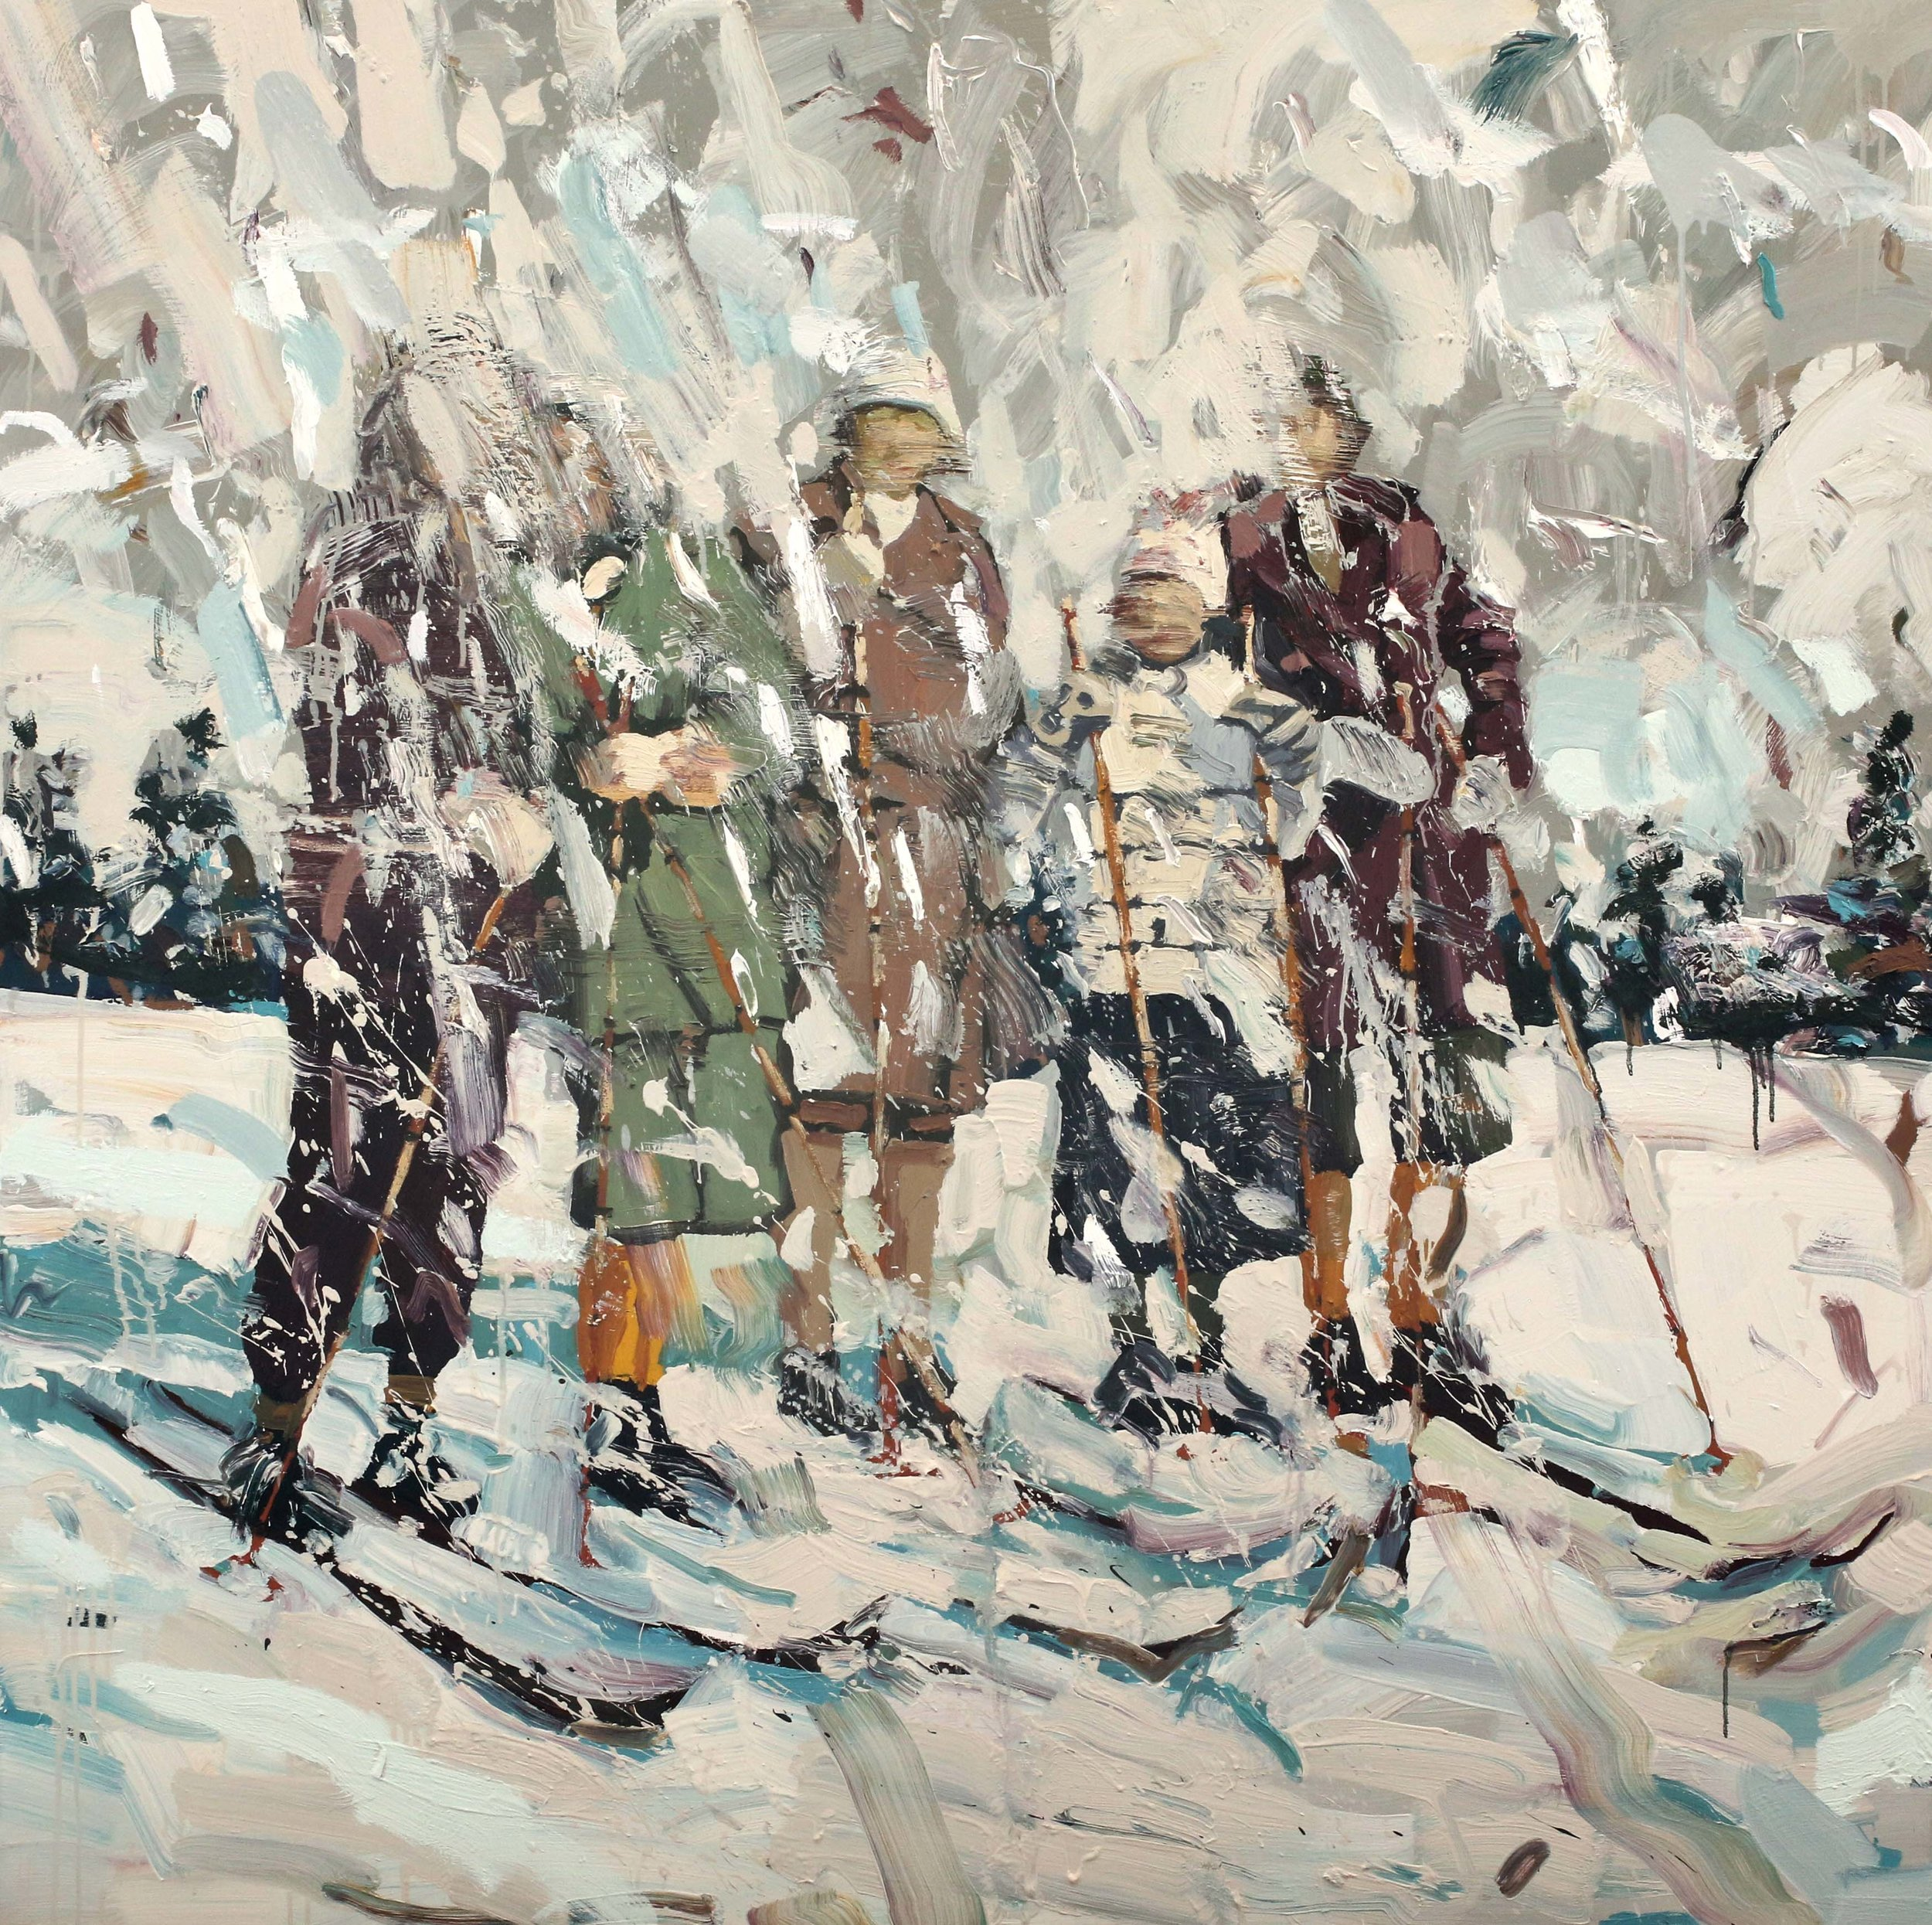 God gammeldags vinter – 150x150 cm – Eggoljetempera på lerret – Privat eie